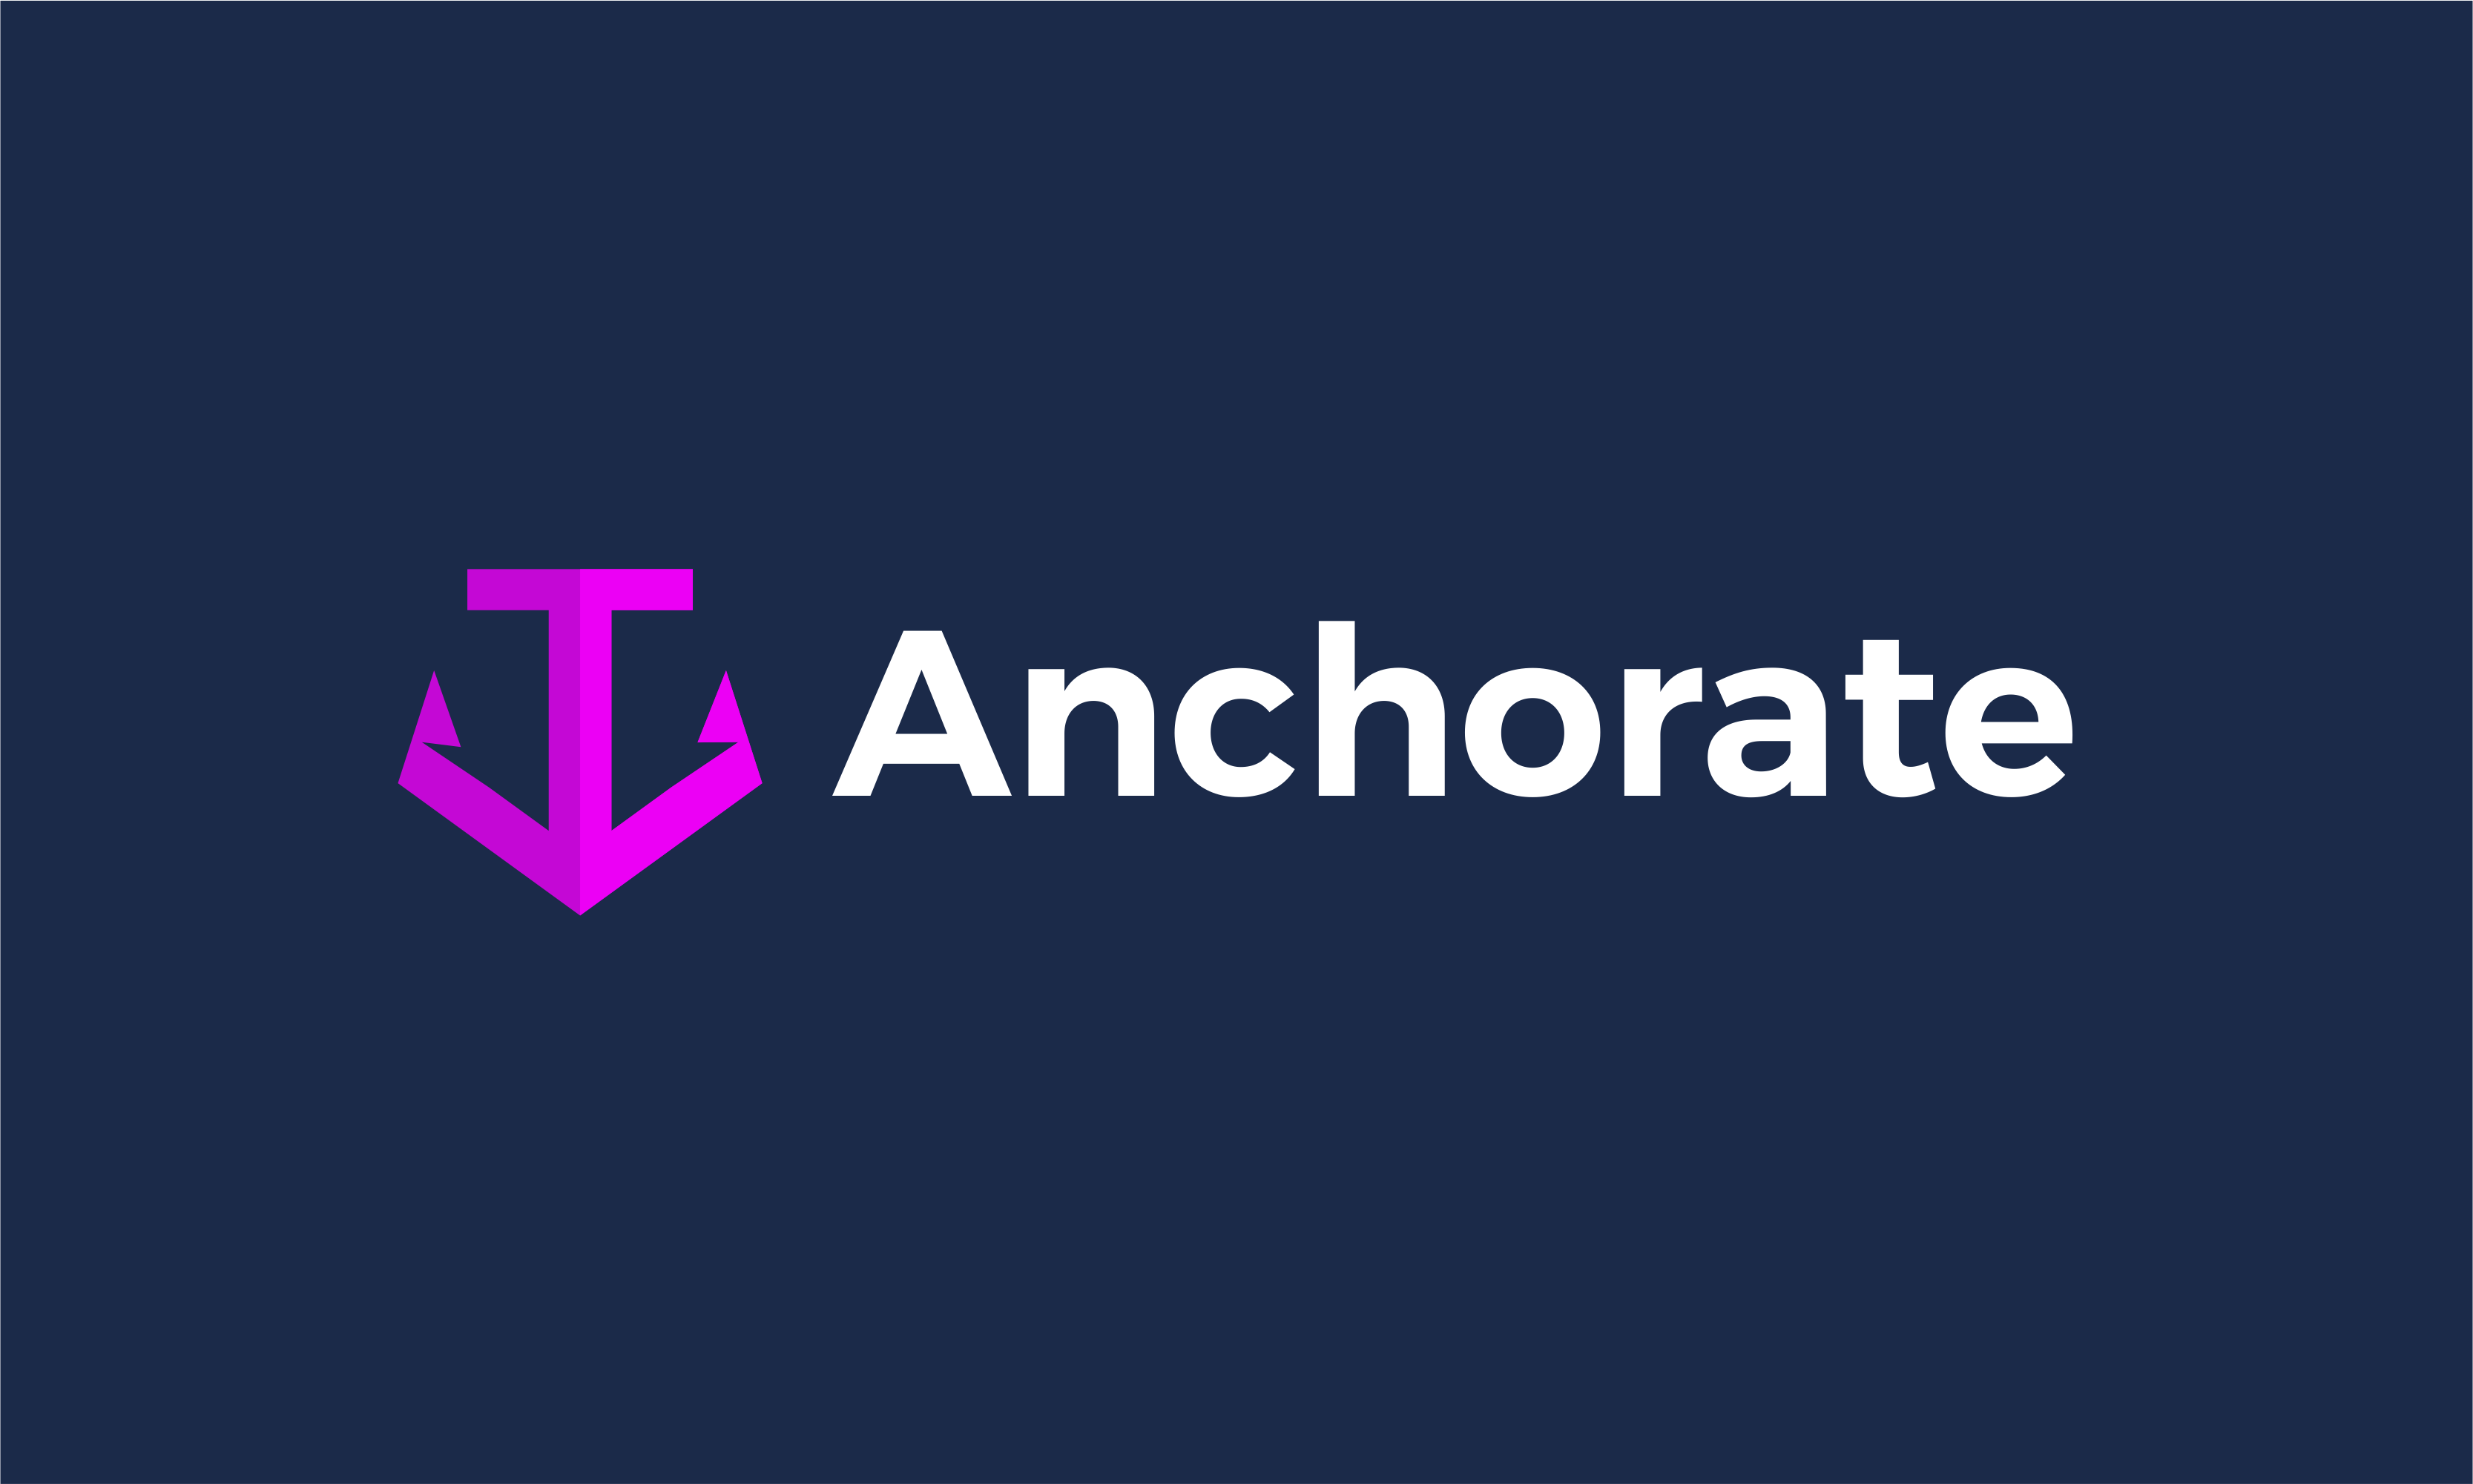 Anchorate